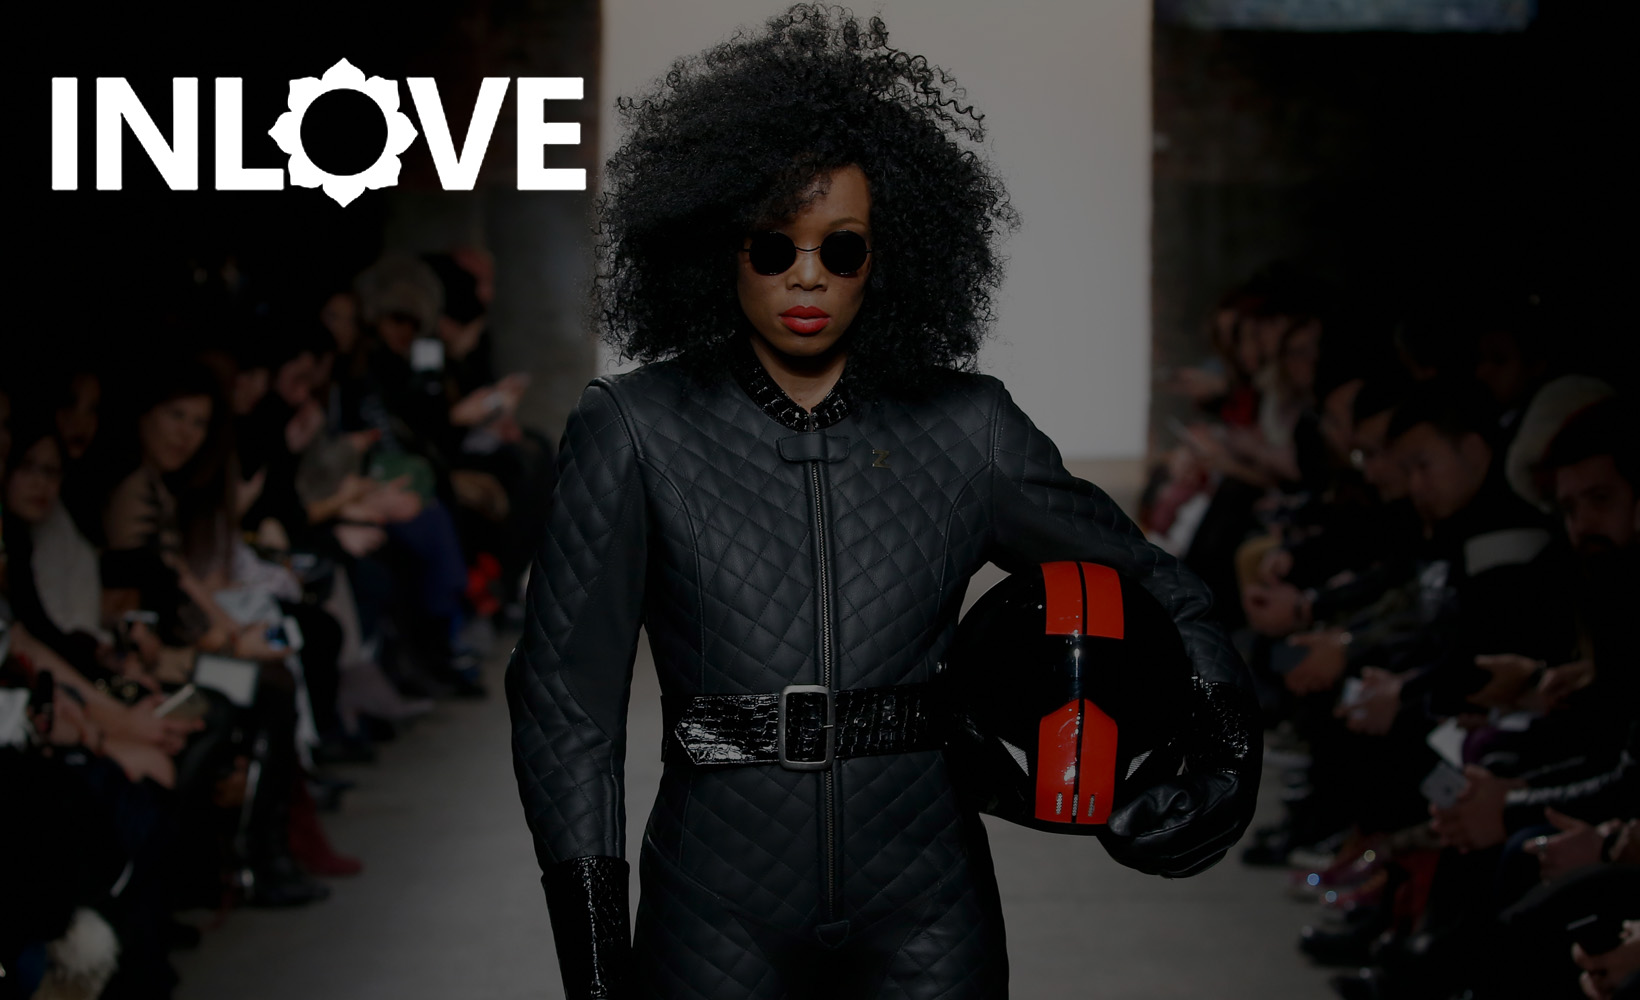 cbbb8ffdfd4e INLOVE Magazine will return to the Nolcha Shows again for the third  consecutive season as an Official Media Partner of the Spring Summer 2018  season taking ...